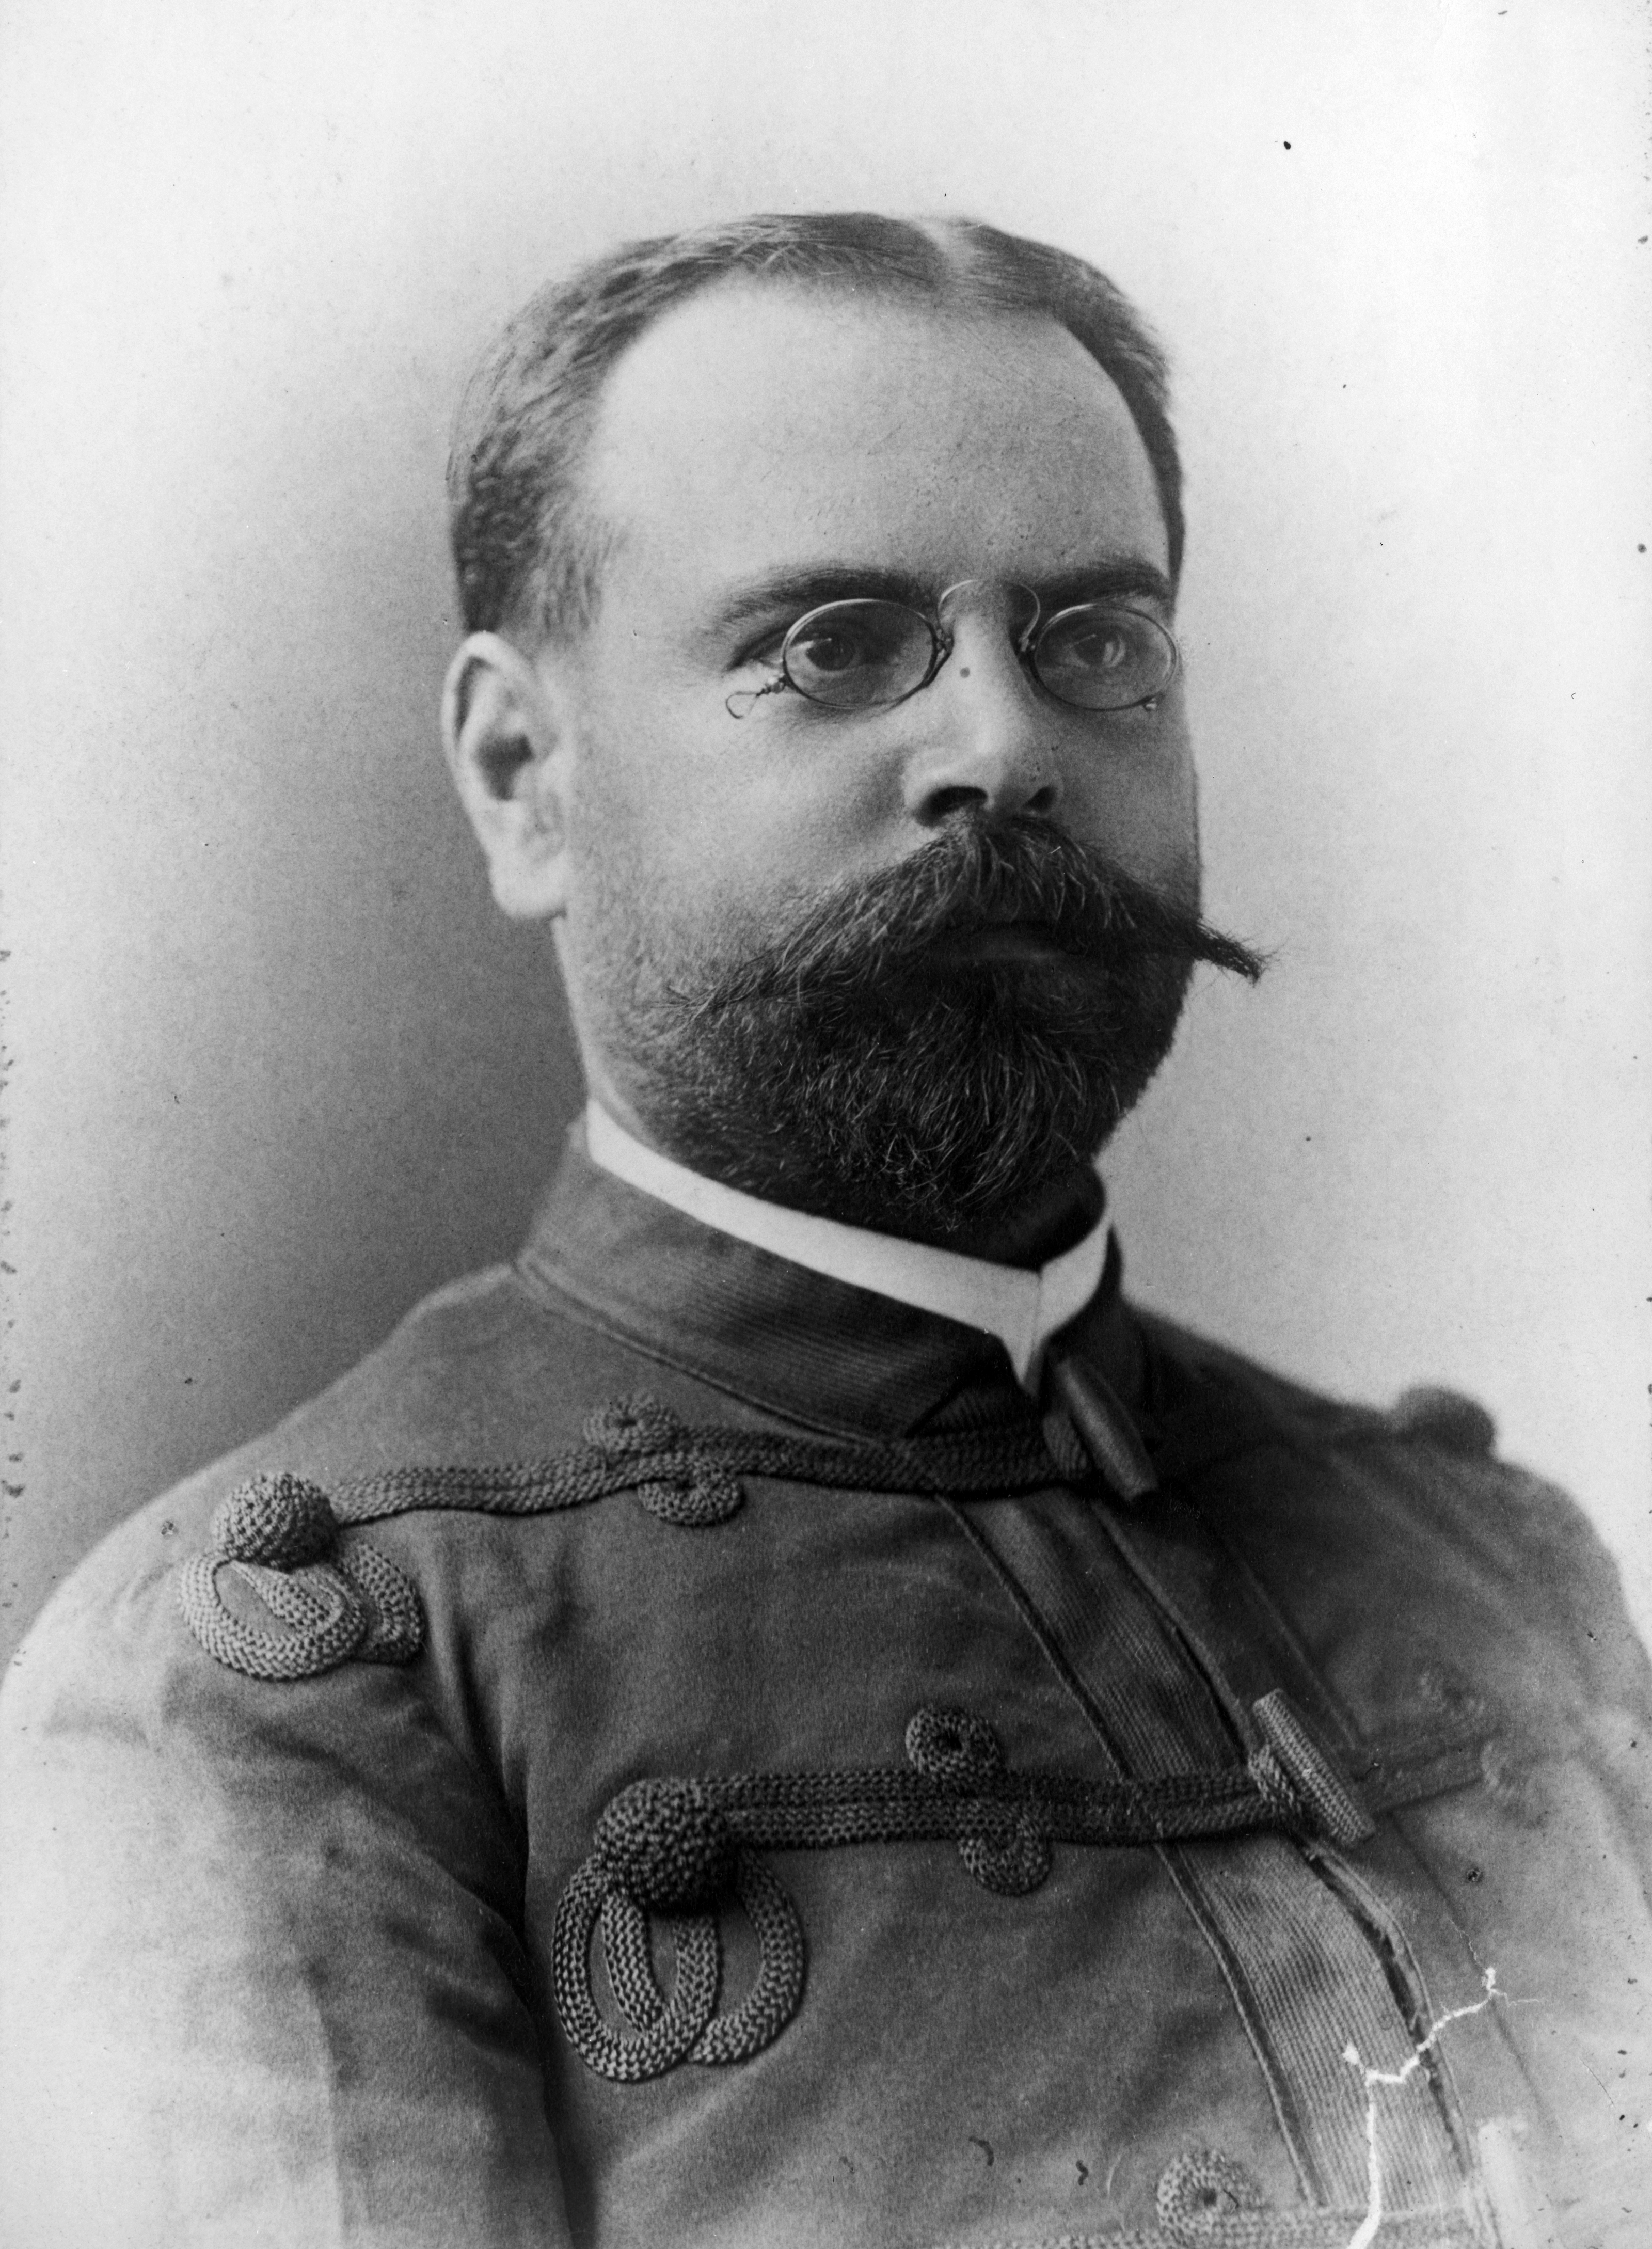 the life and music career of john philip sousa Making the march king john philip sousa's washington years, 1854-1893 the legendary bandleader's early career and rise to fame john philip sousa's mature career as the indomitable leader of his own touring band is well known, but the years leading up to his emergence as a celebrity have escaped serious attention.